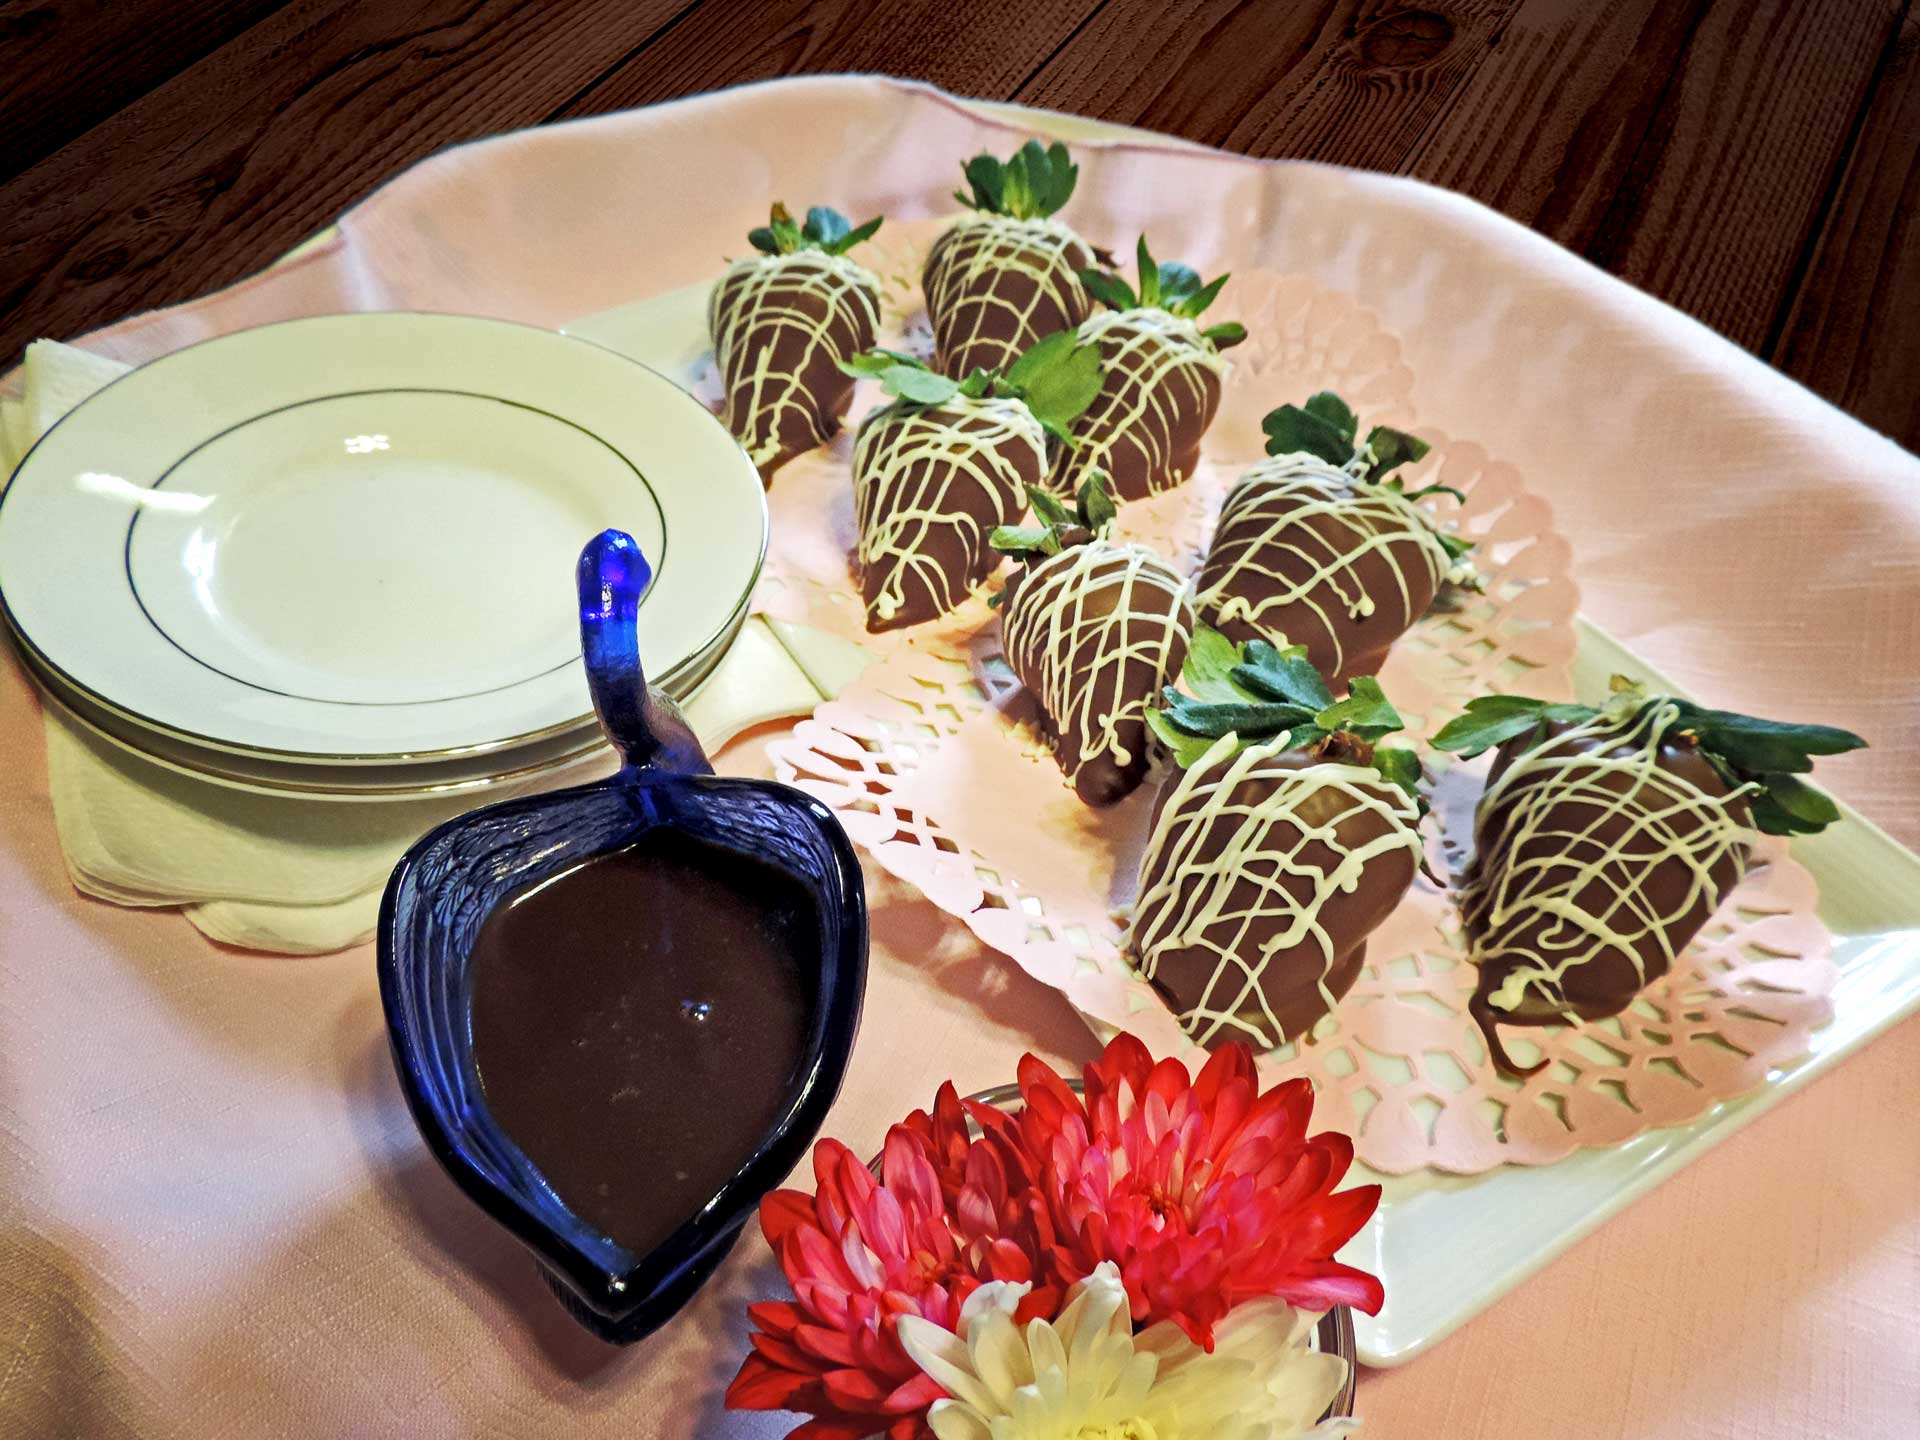 Home Made Chocolate Dipped Strawberries with Chocolate Dipping Sauce